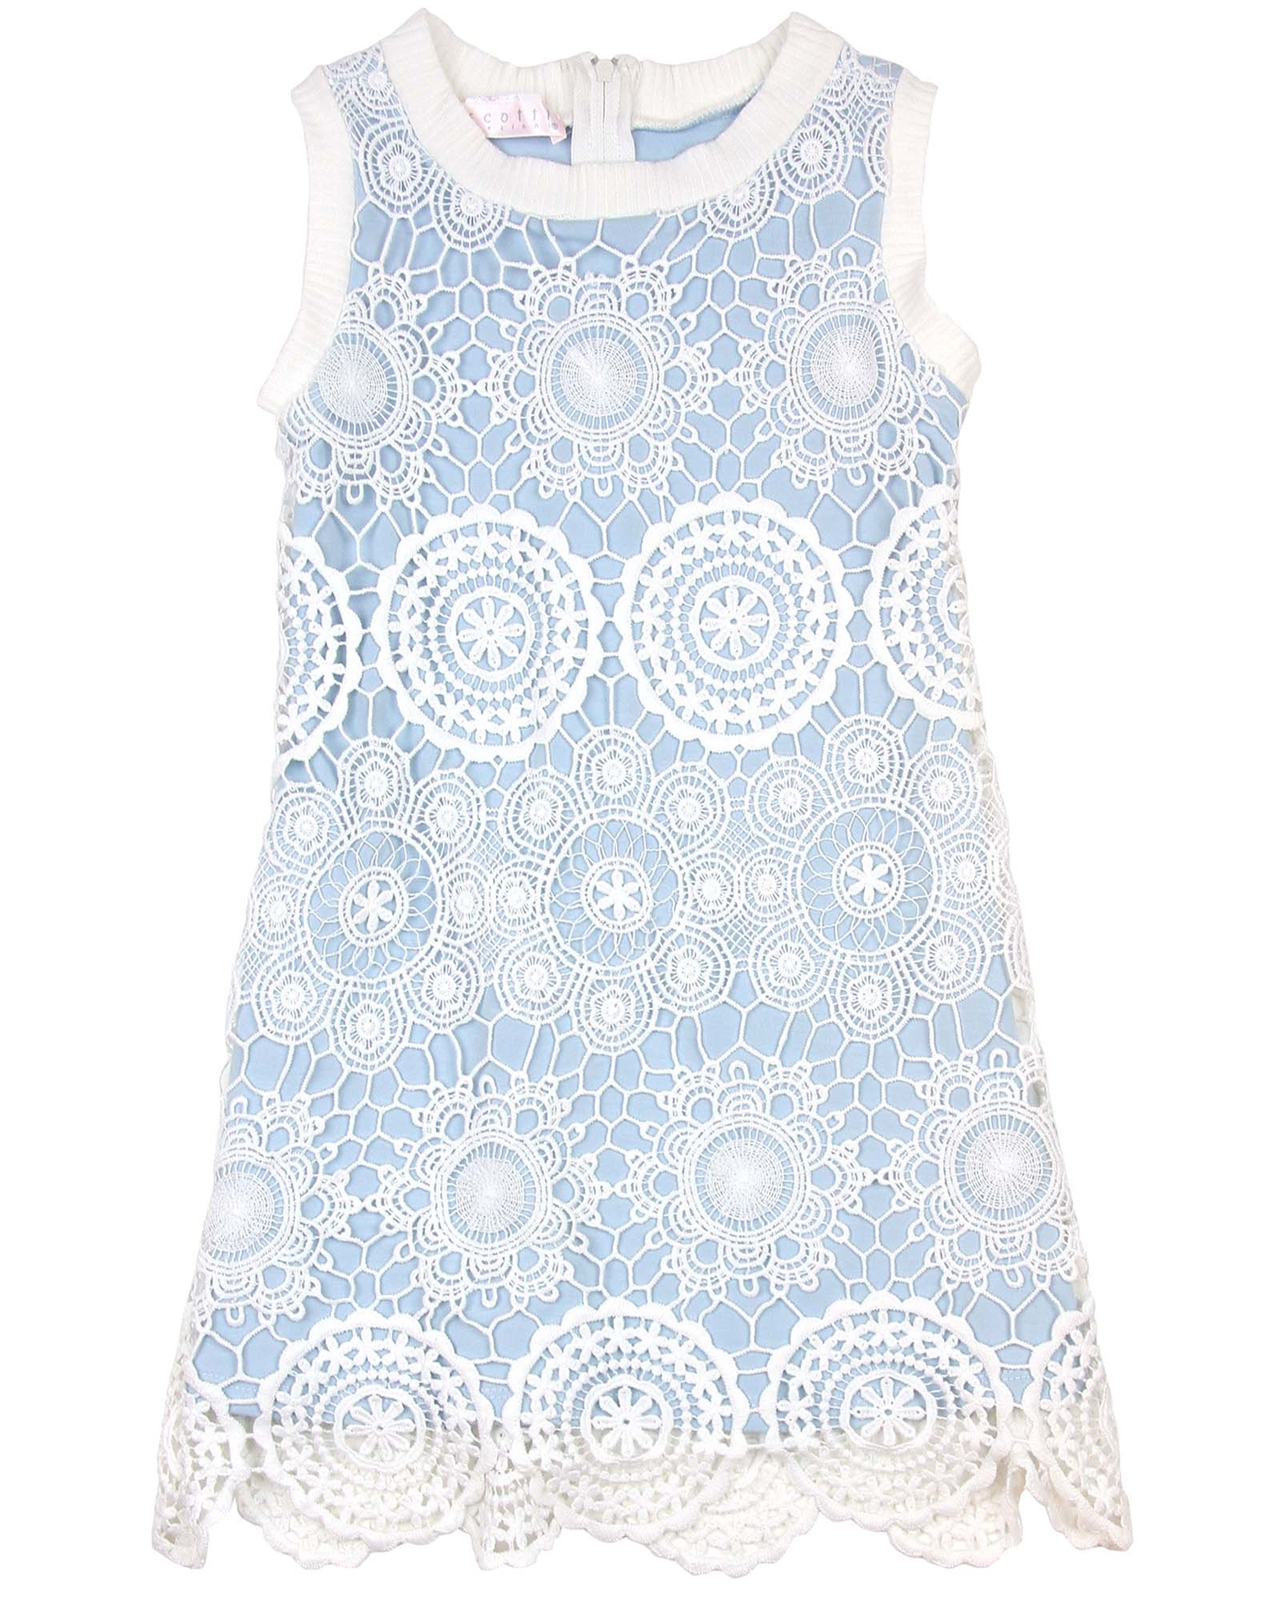 db008c655 Biscotti Girls Shift Dress Crazy for Crochet Blue